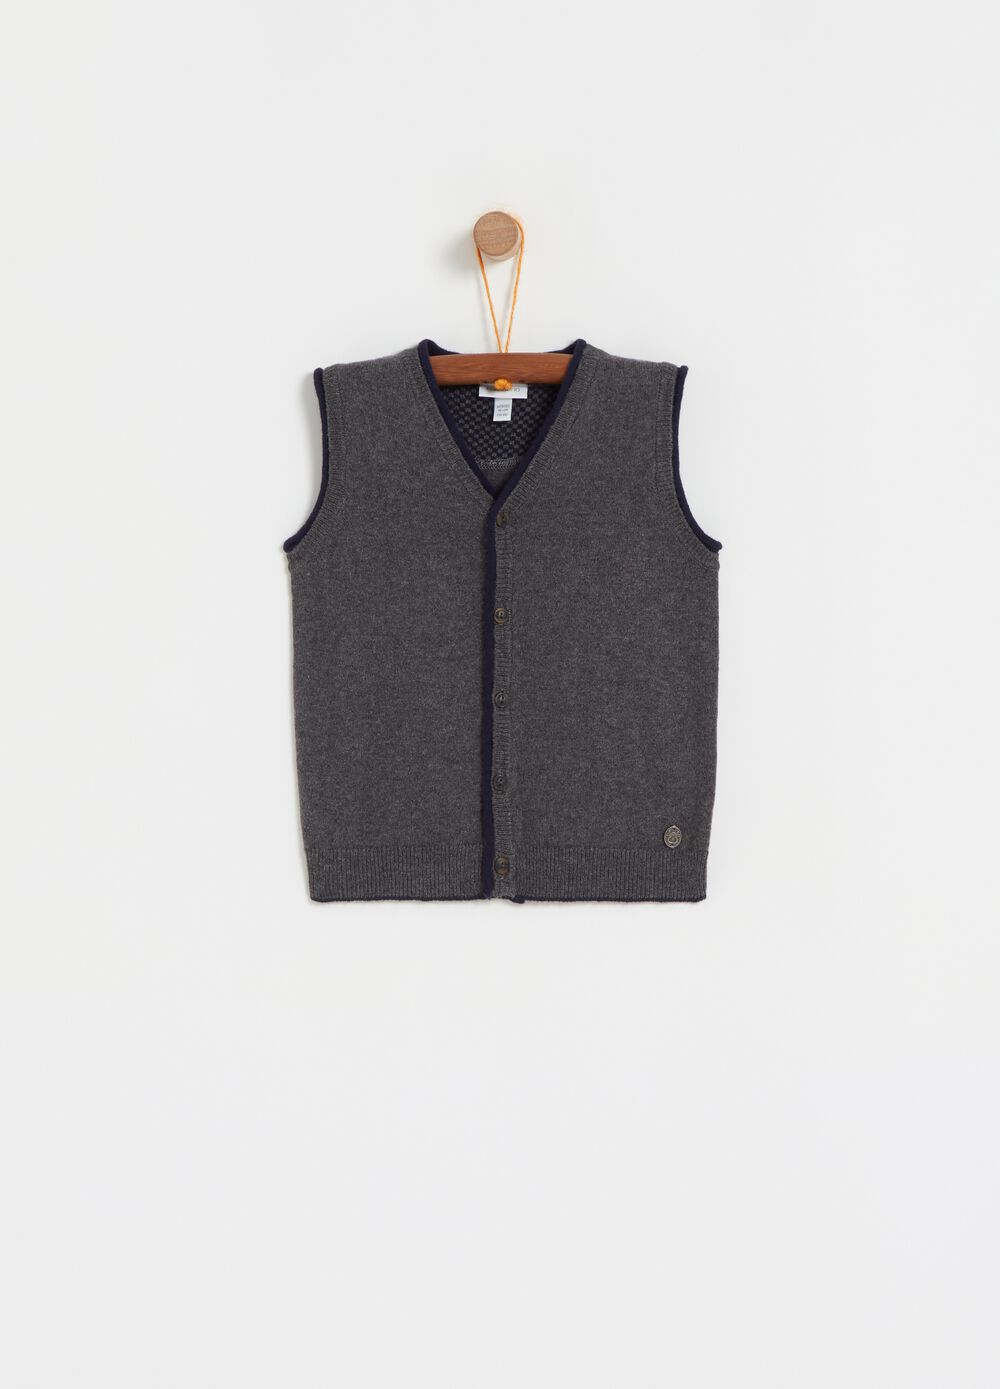 Wool and cotton mélange gilet with buttons